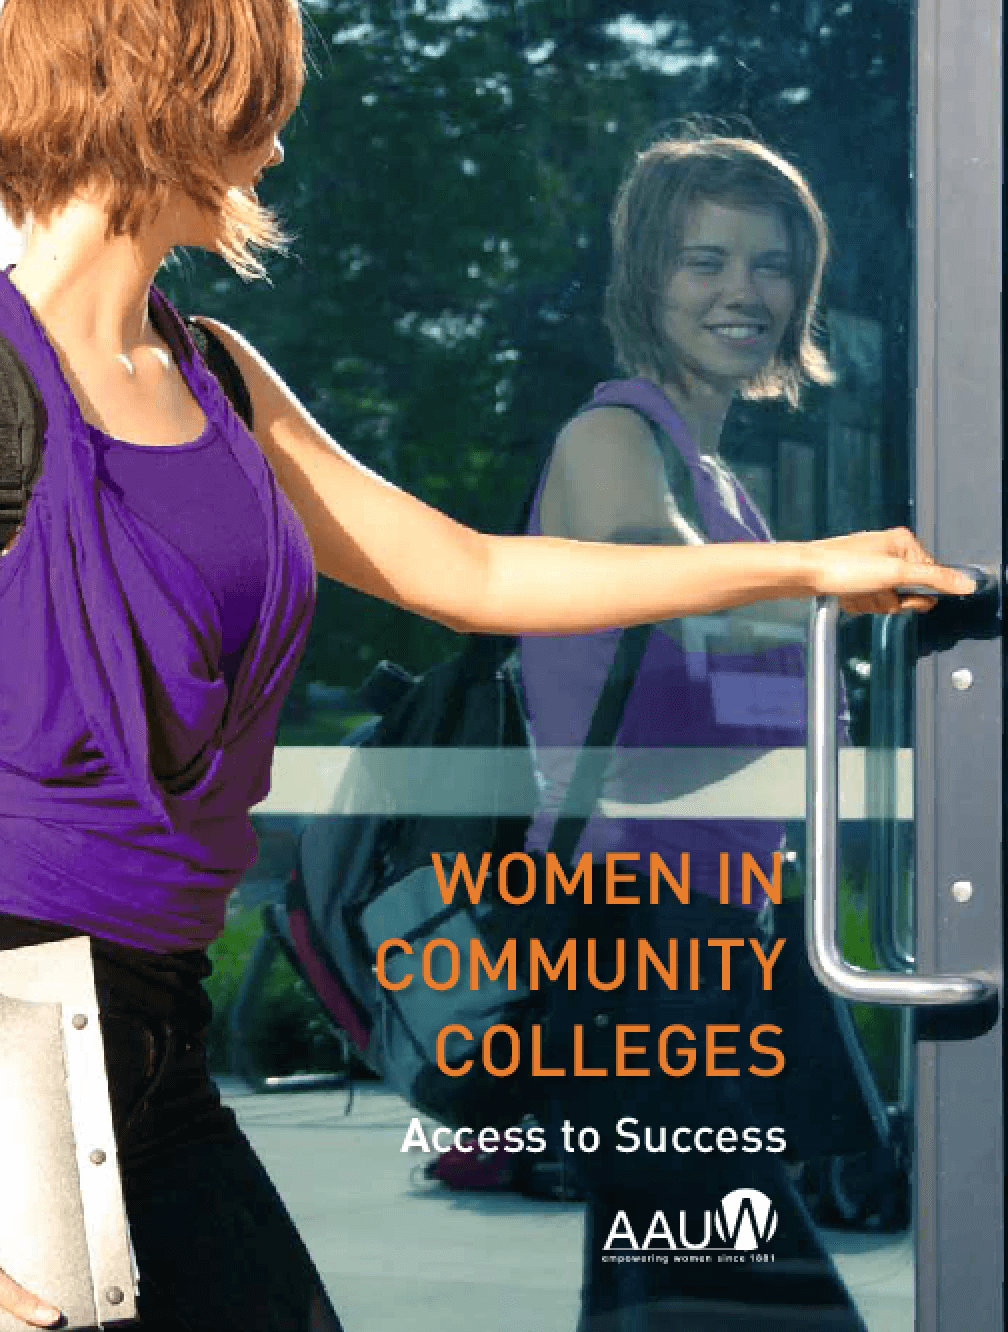 Women in Community Colleges: Access to Success